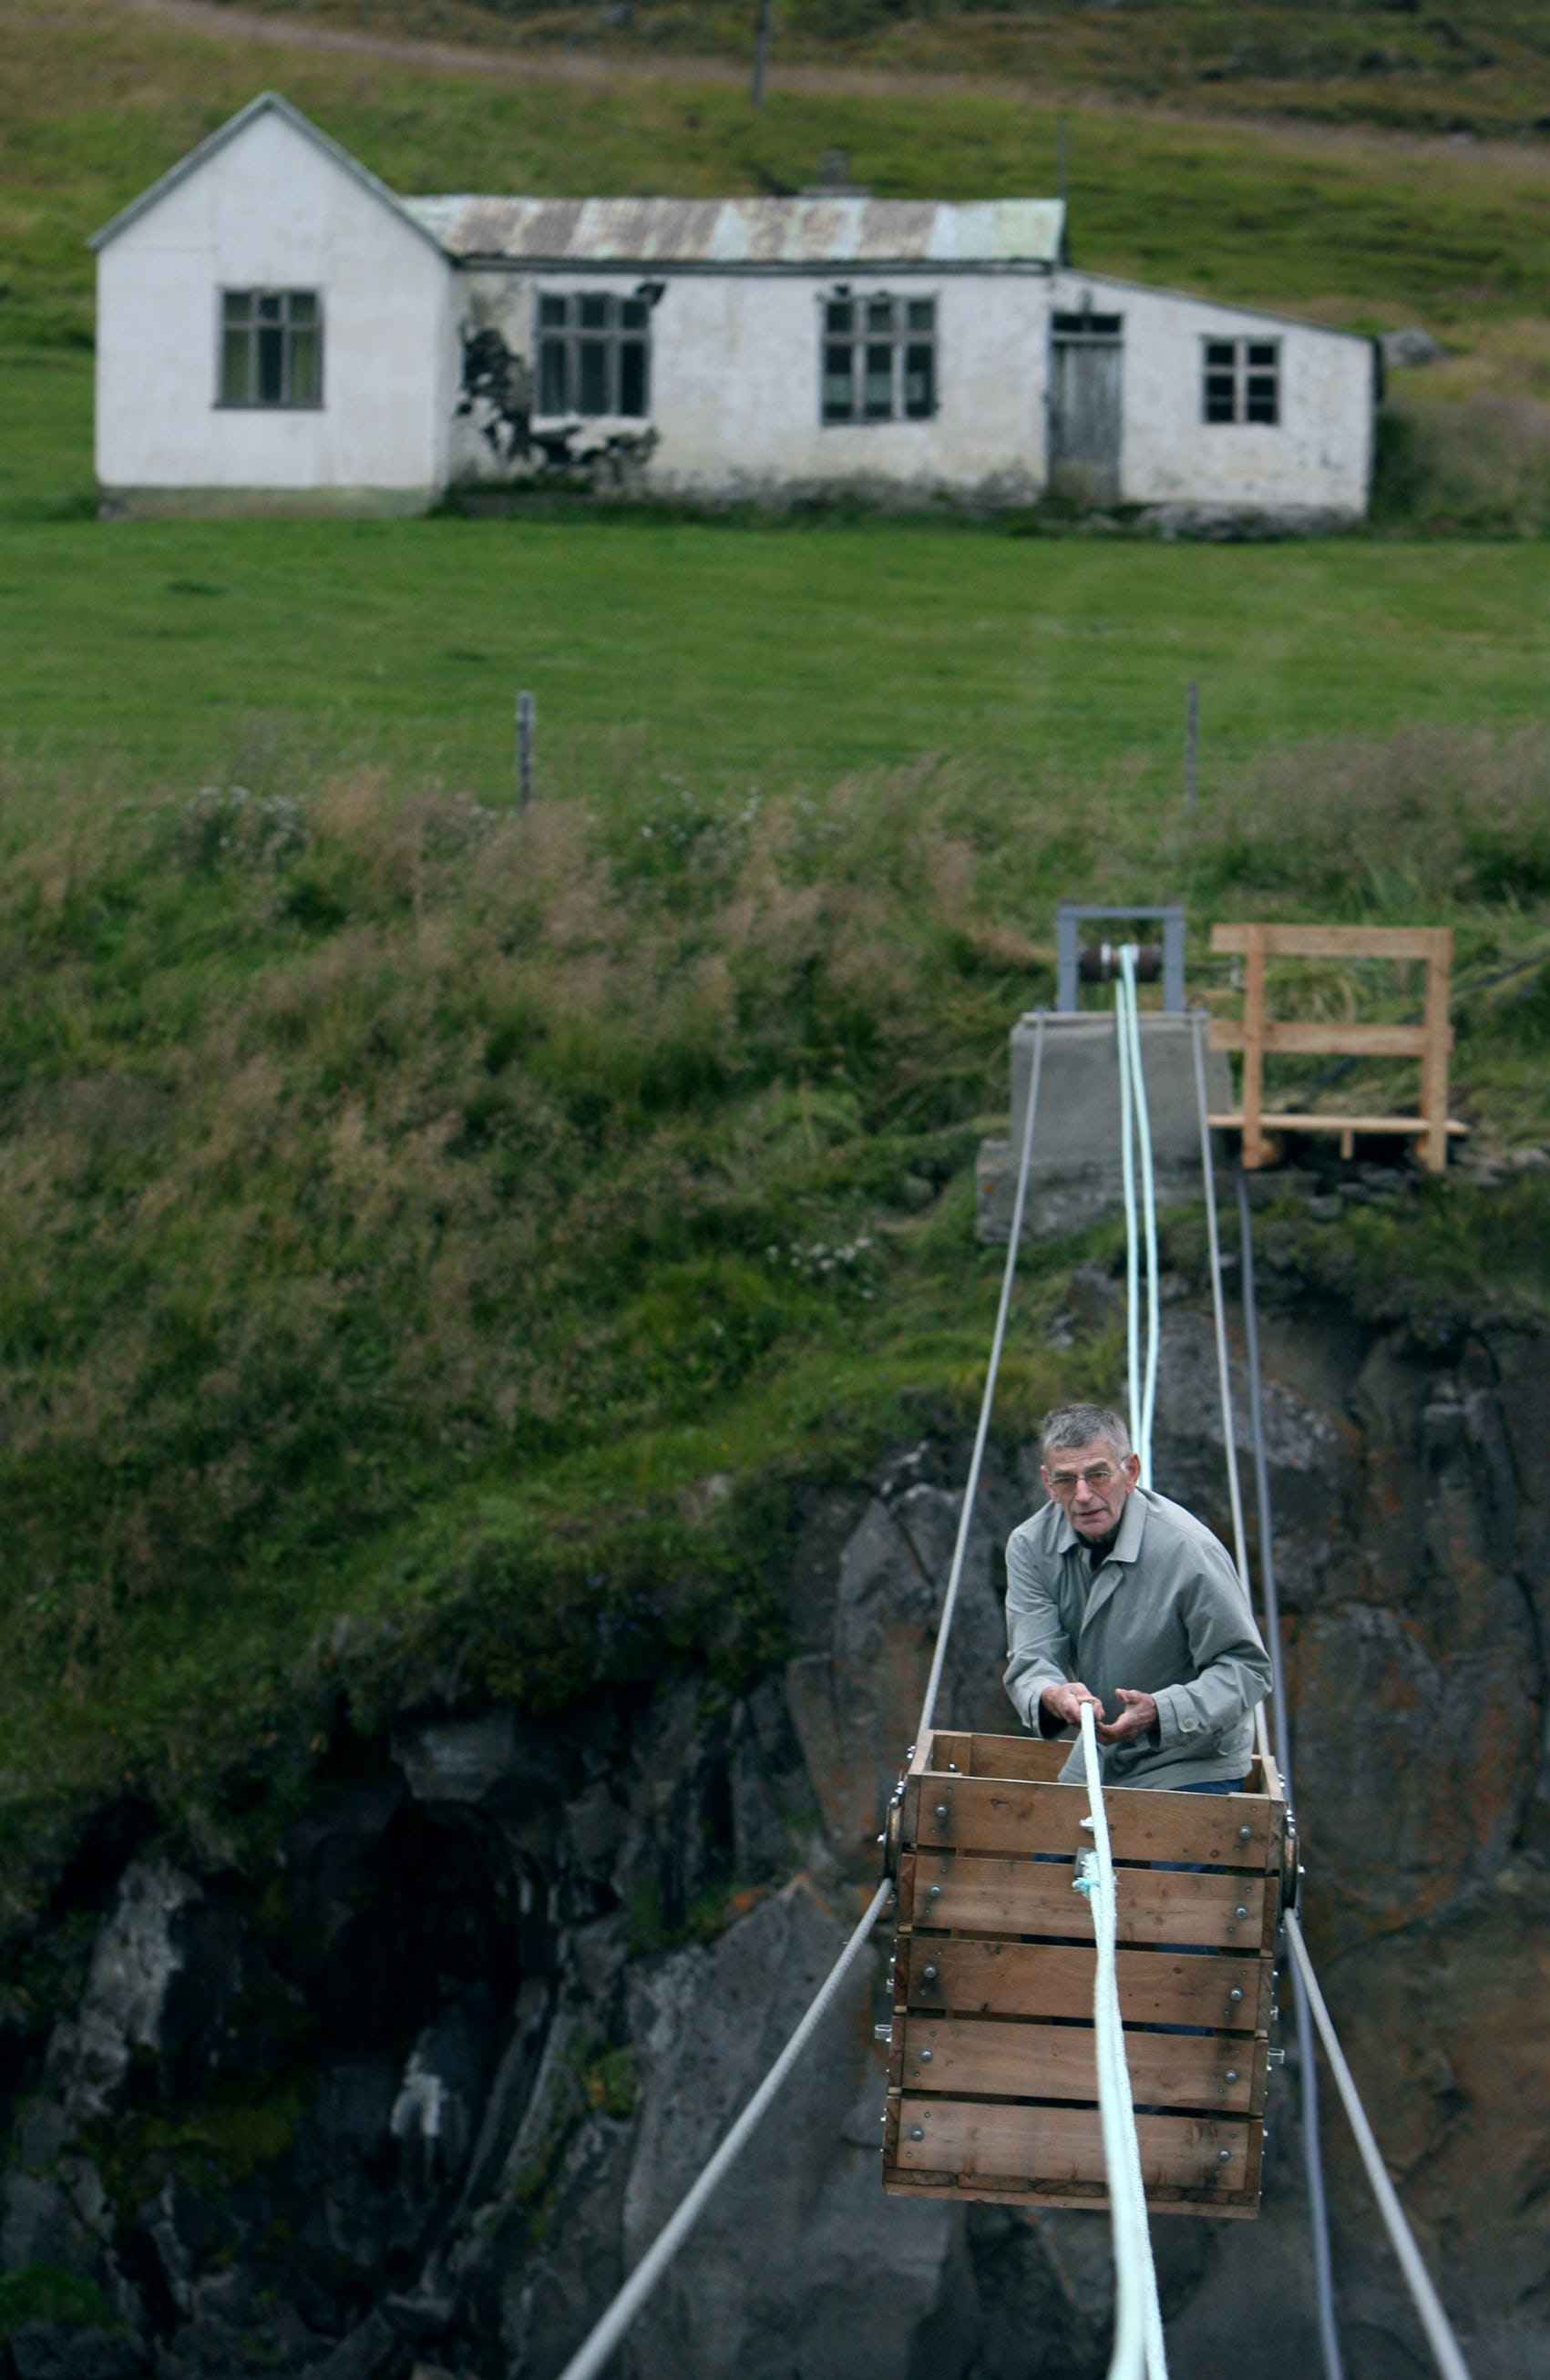 A traveller in Iceland is hand-pulled across a glacial river in a cableway cart